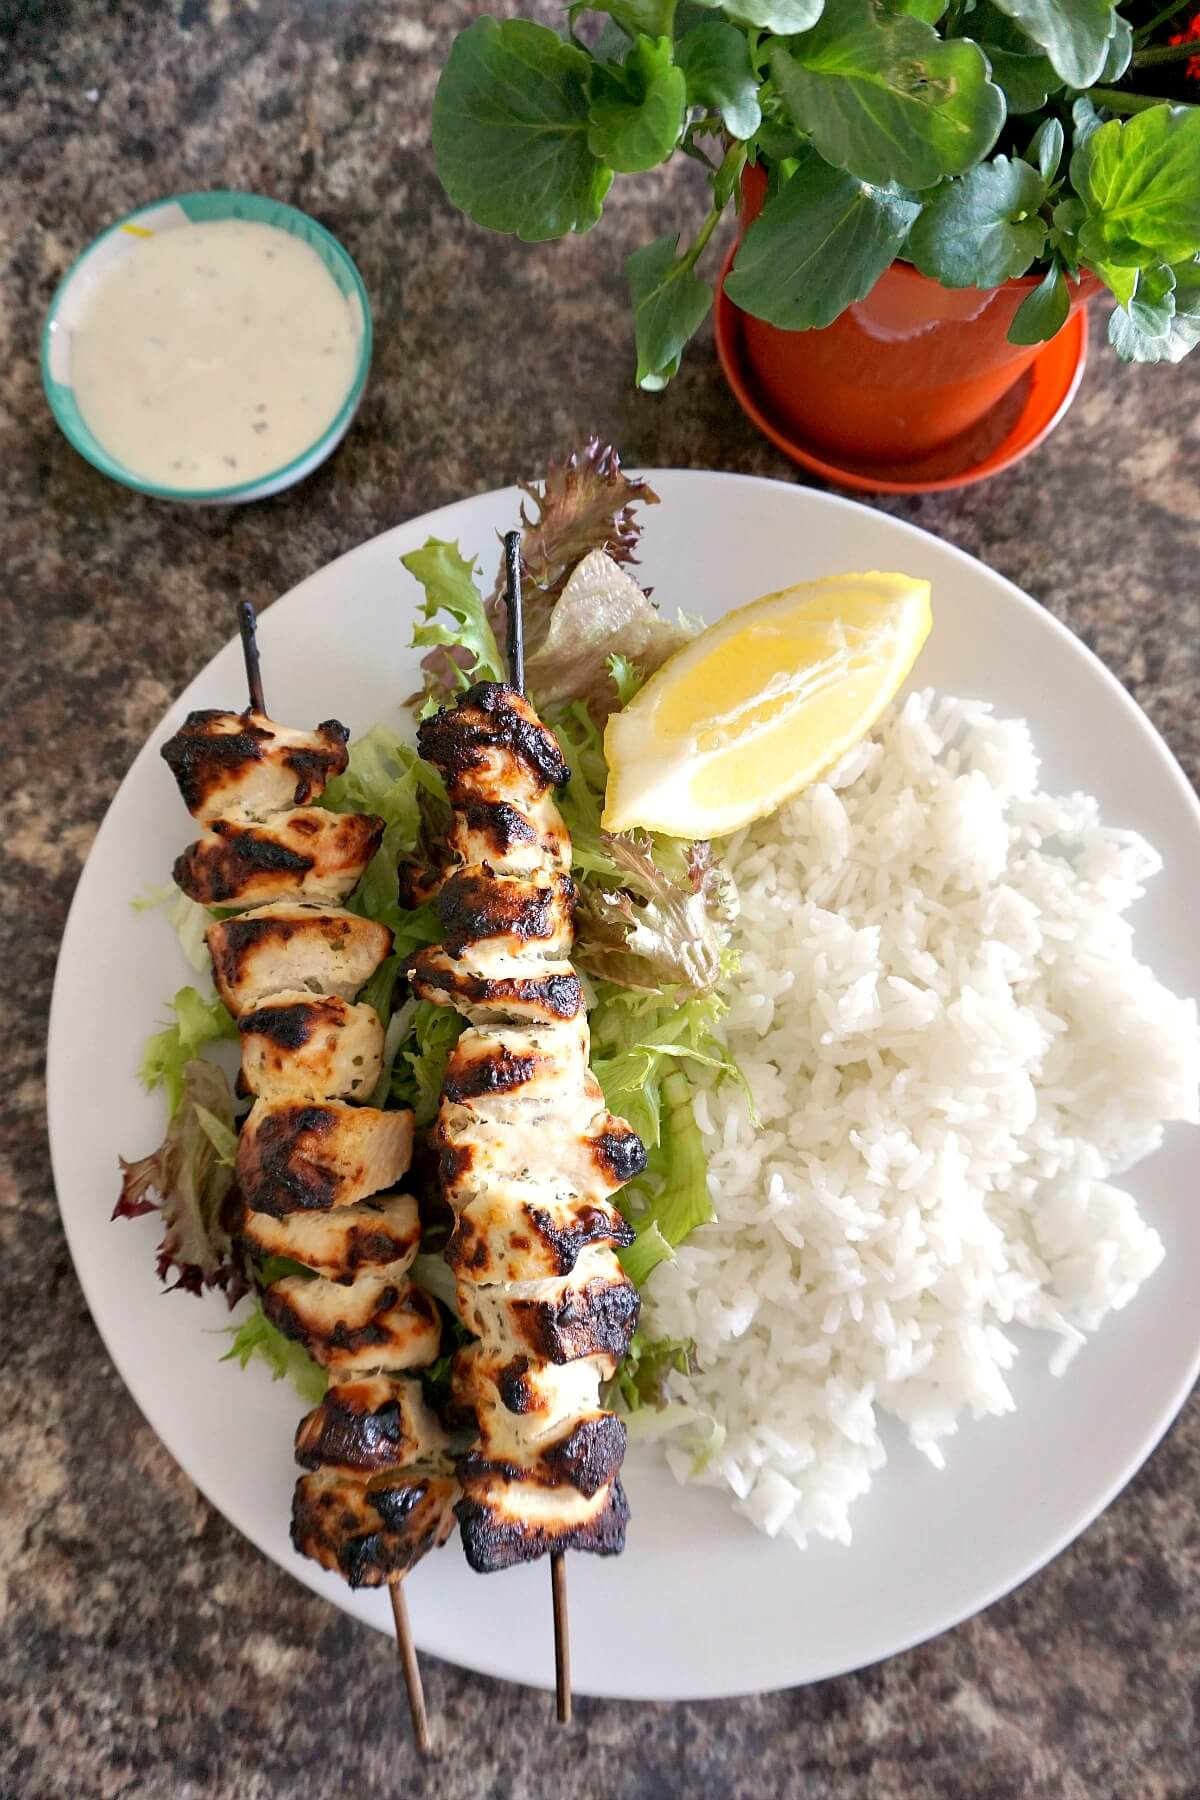 Overhead shoot of a white plate with 2 chicken kebabs, rice, salad and a lemon wedge